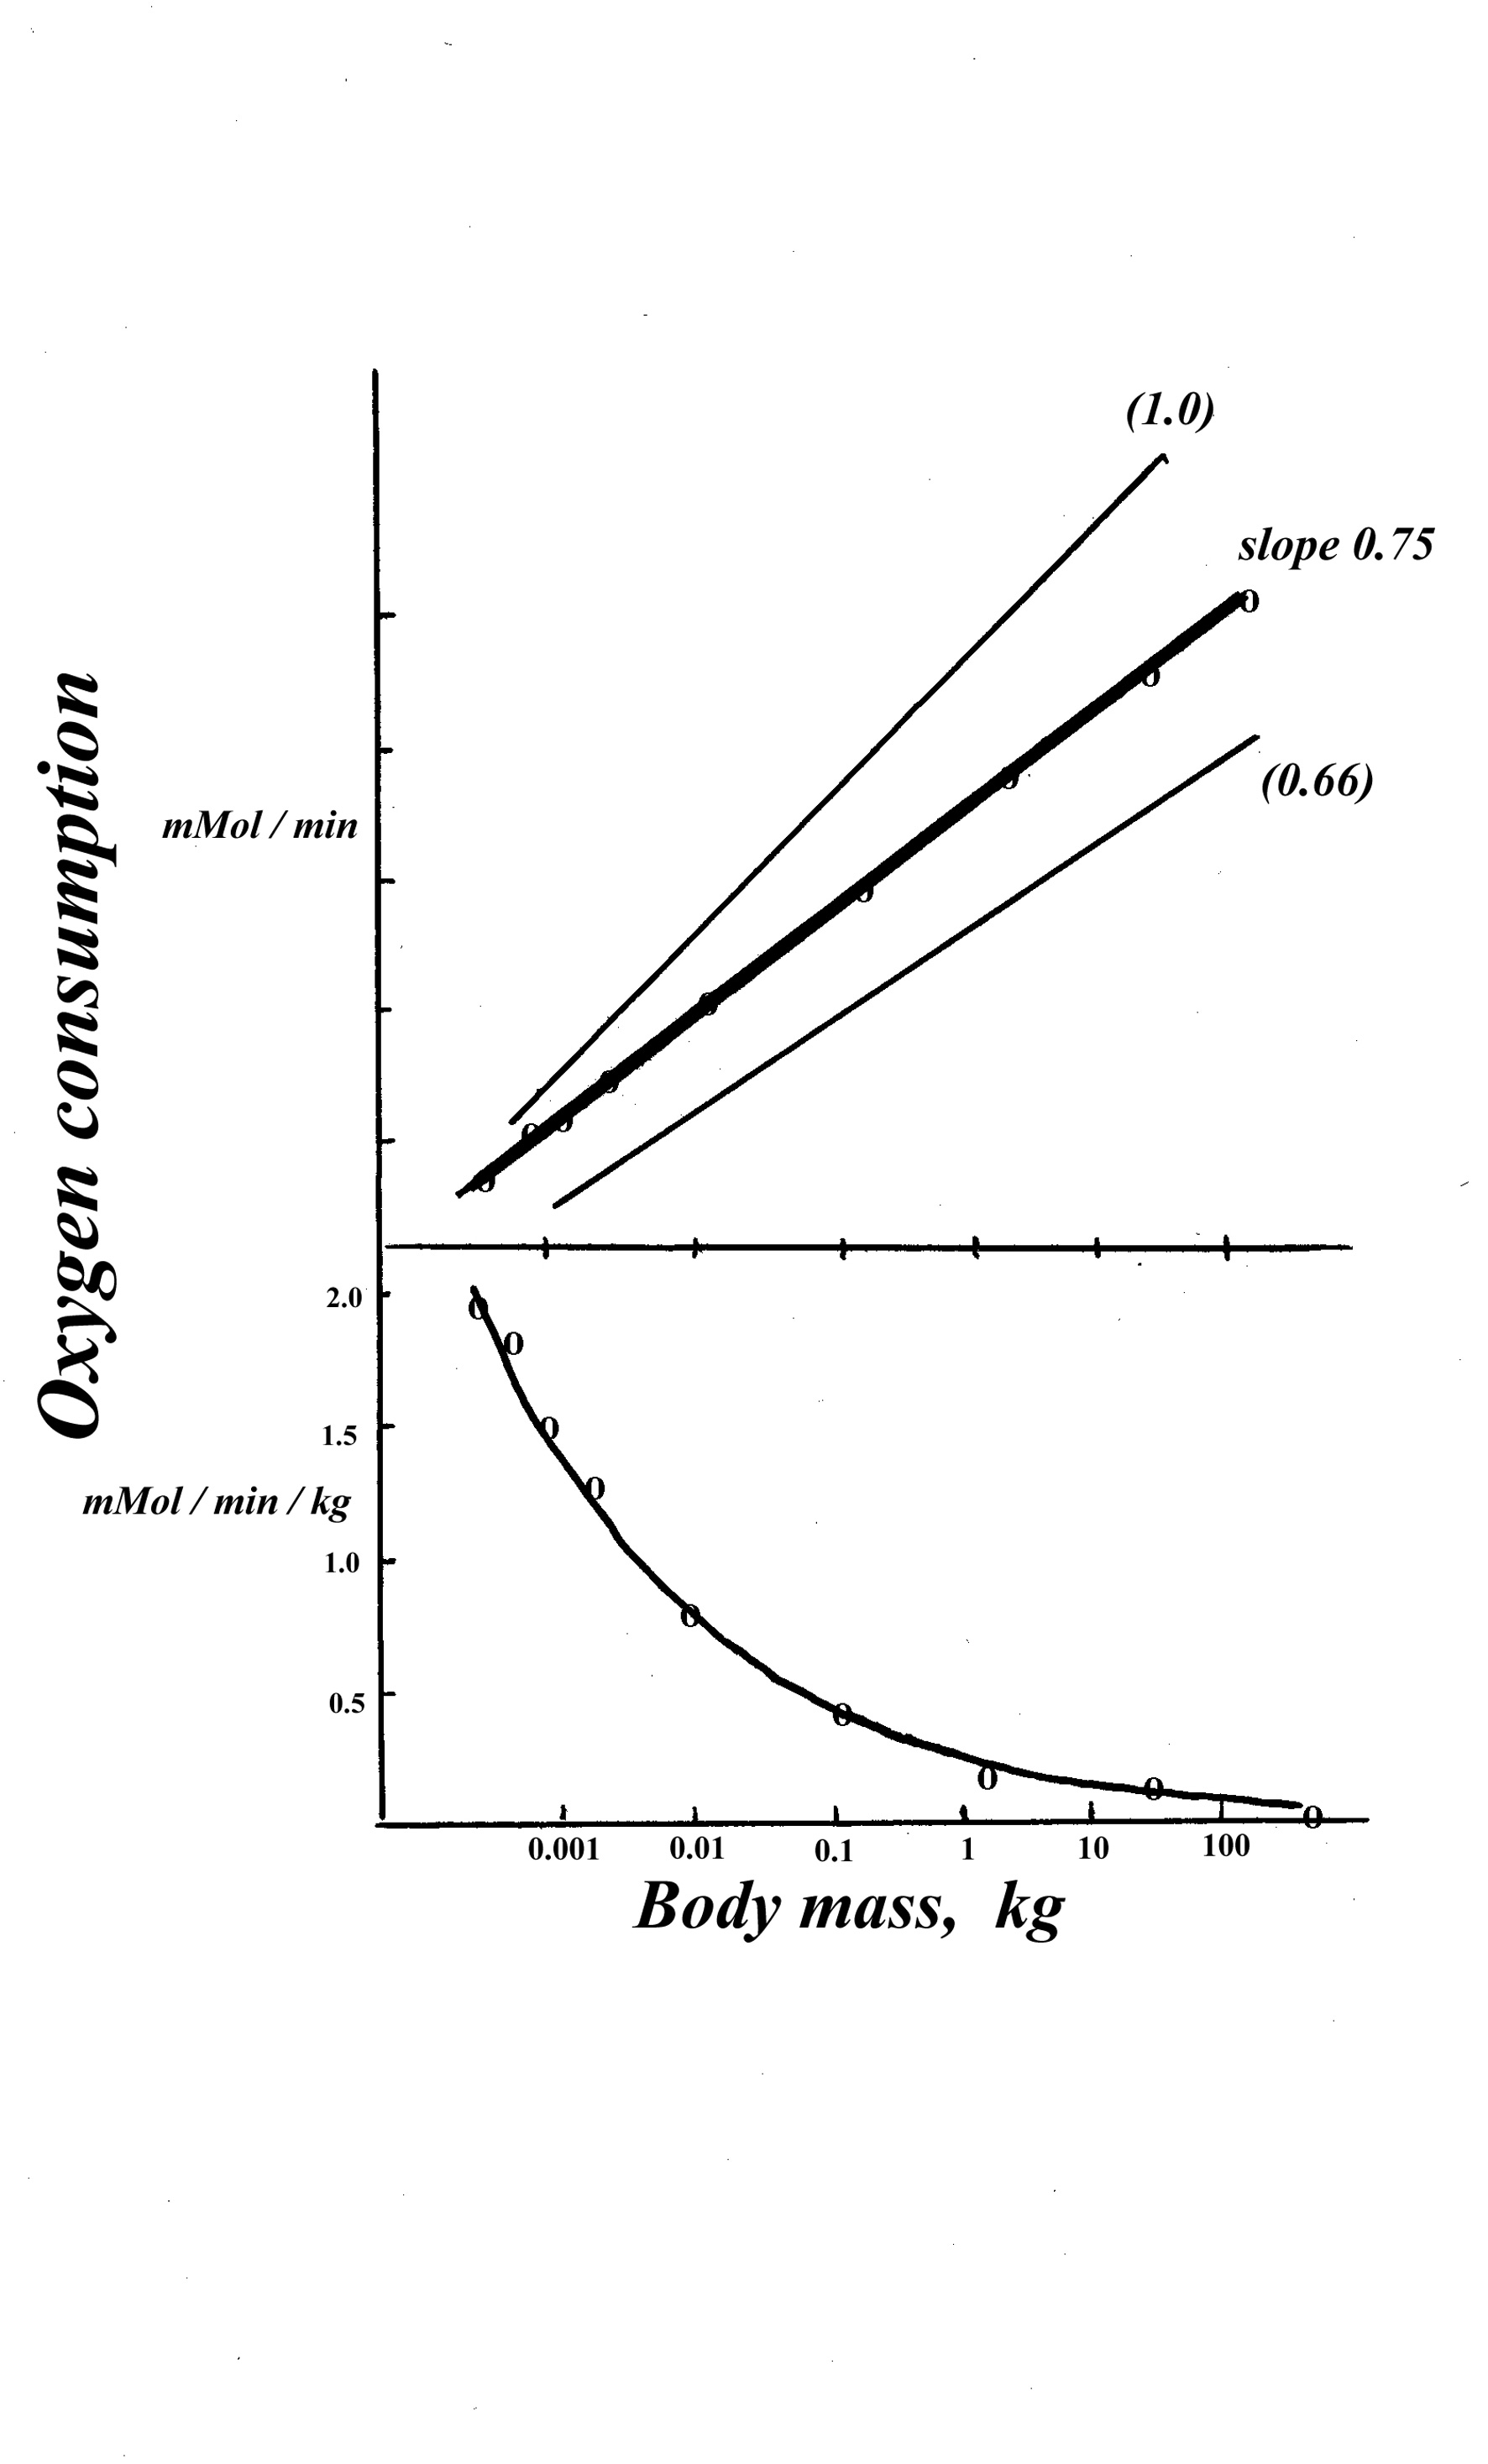 Functional Design Of The Respiratory System Inhalation And Exhalation Diagram Breathing Activity Fig14 Function Relating A Species Resting Oxygen Consumption Vo2 To Its Body Mass Mouse Elephant Curve Indicates Progressive Reduction In